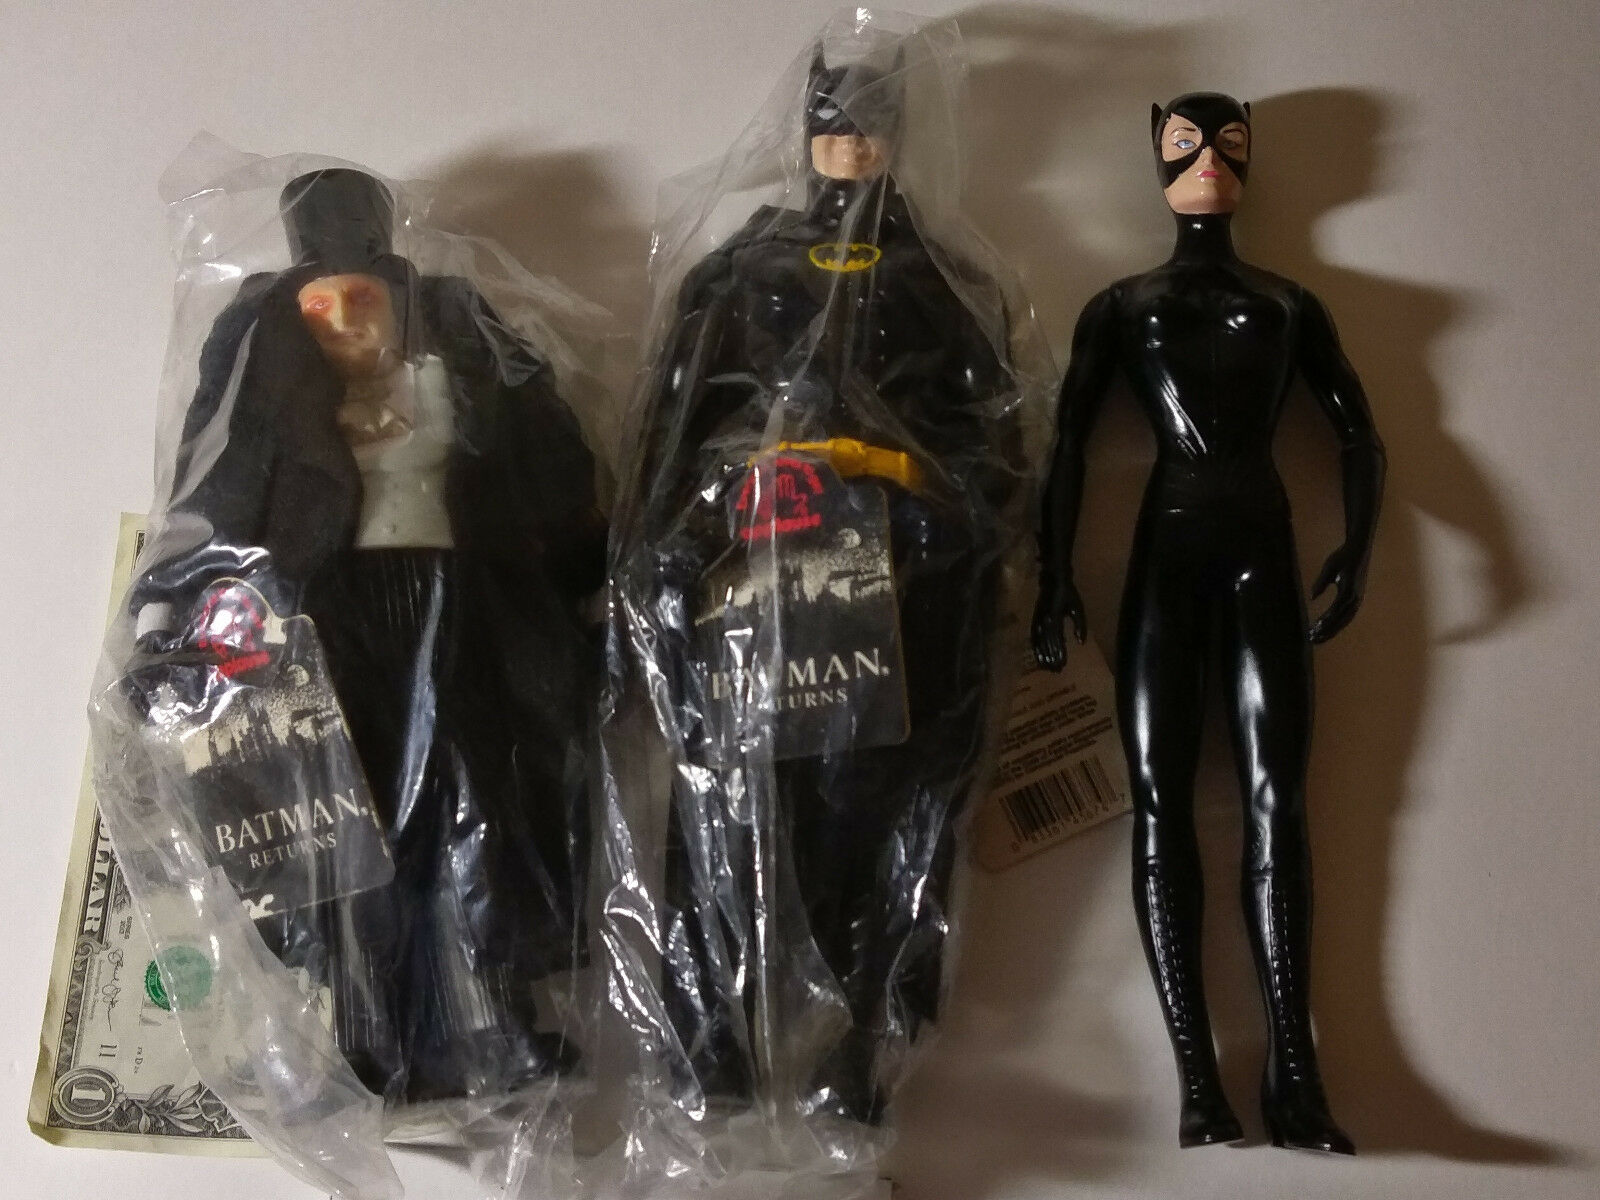 Batman Returns 11  Batman, Catwoman, Penguin figures by Applause 1992